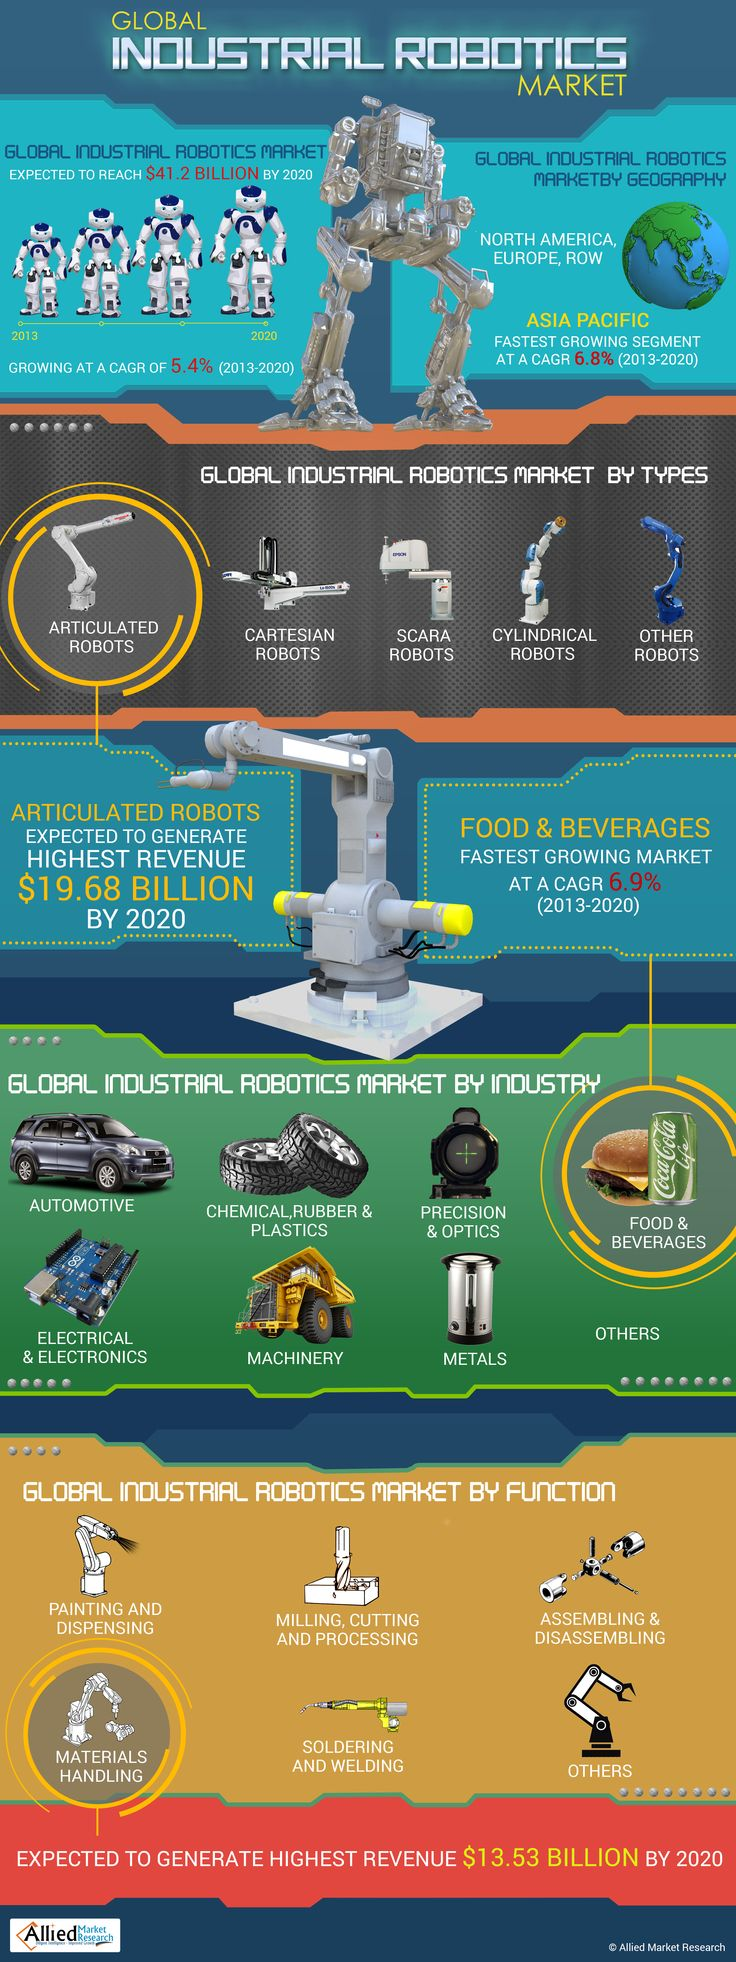 The global industrial robotics market is expected to grow at a CAGR of 5.4% during the forecast period from 2013 to 2020, reaching a market size of $41.17 billion in 2020. The market was valued at $26.78 billion in 2012.